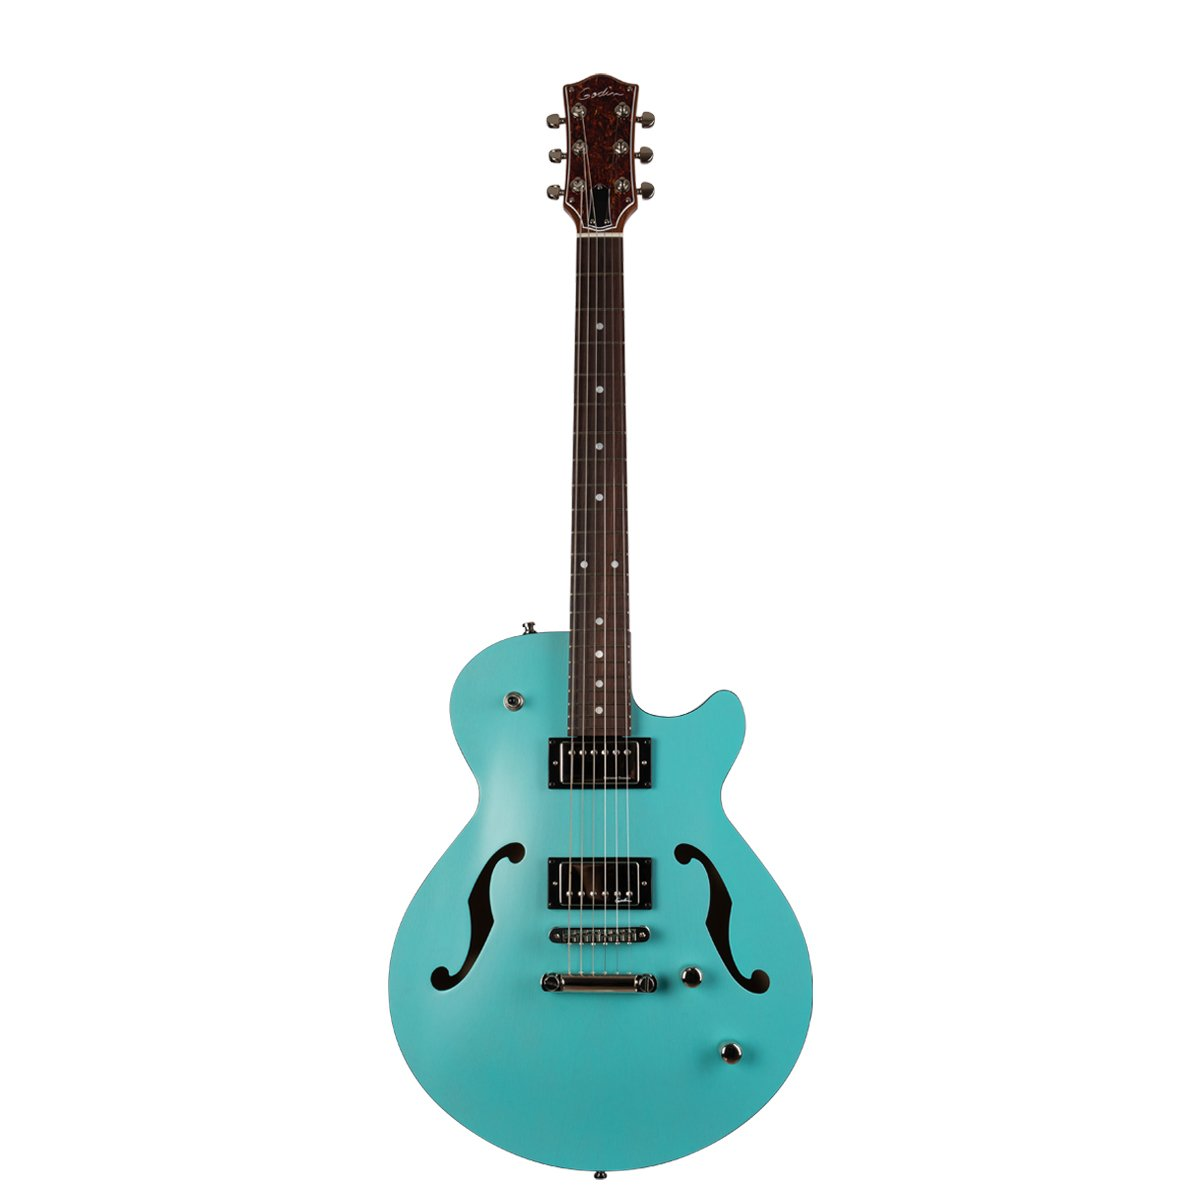 Factory Second Godin Montreal Premiere HT - Laguna Blue with Bag